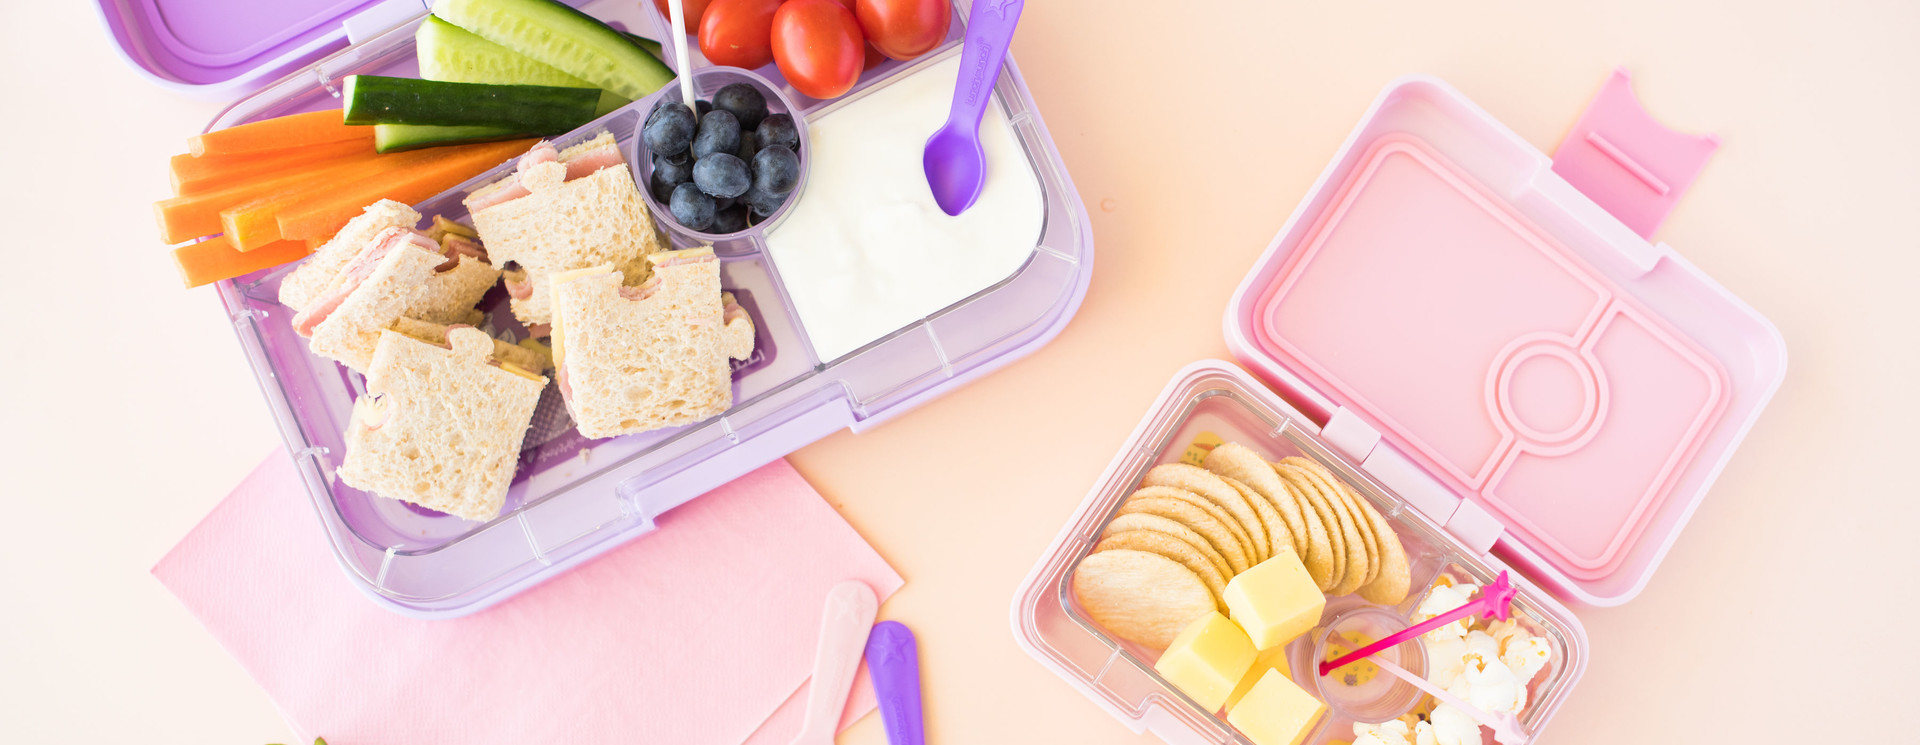 Yumbox accessoires